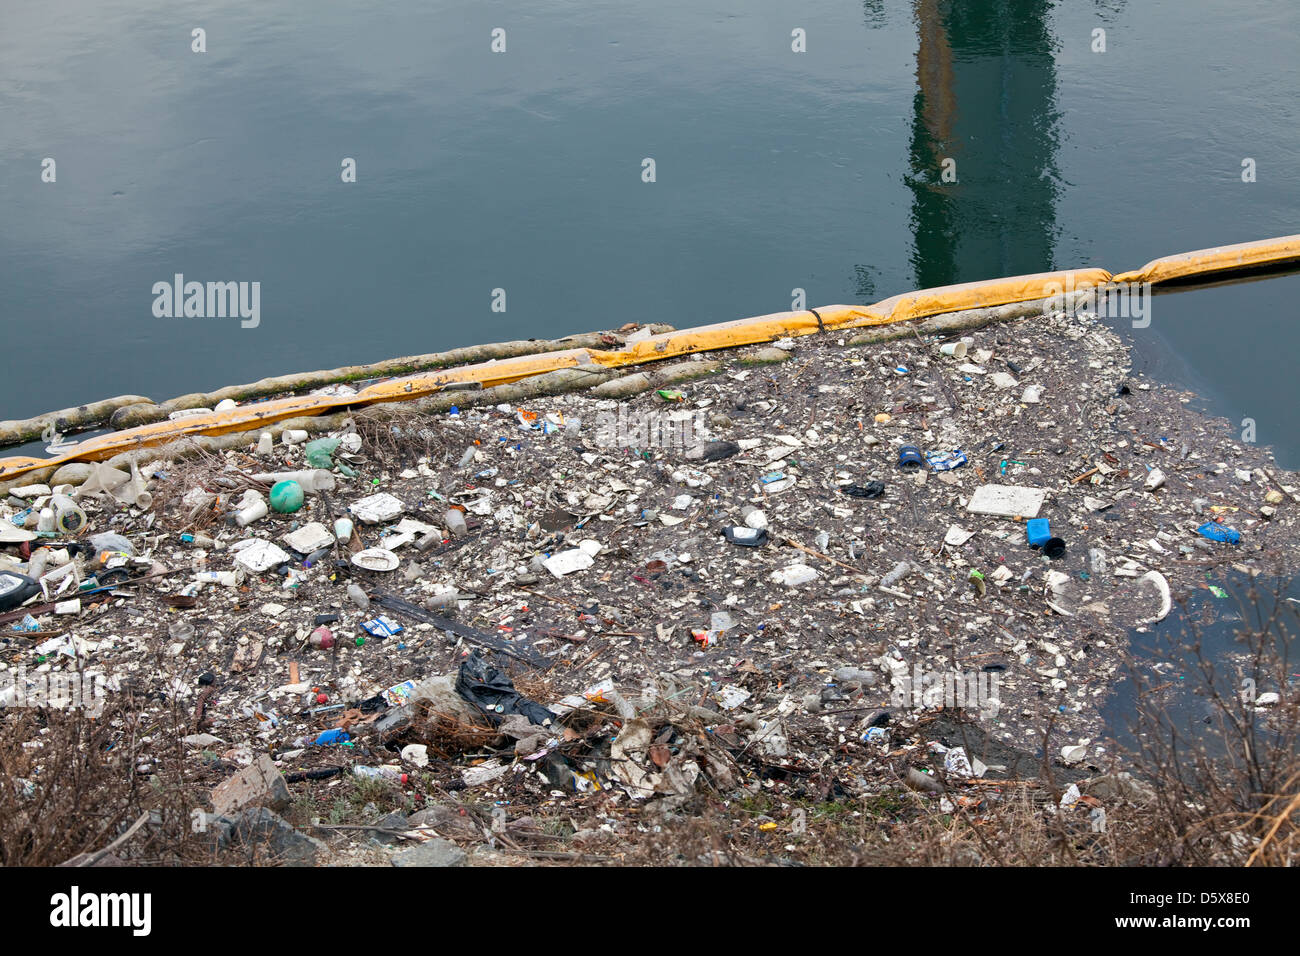 Boom collecting garbage and trash from urban runoff. Dominguez Channel, a 15.7 mile stream that drains the Dominguez - Stock Image